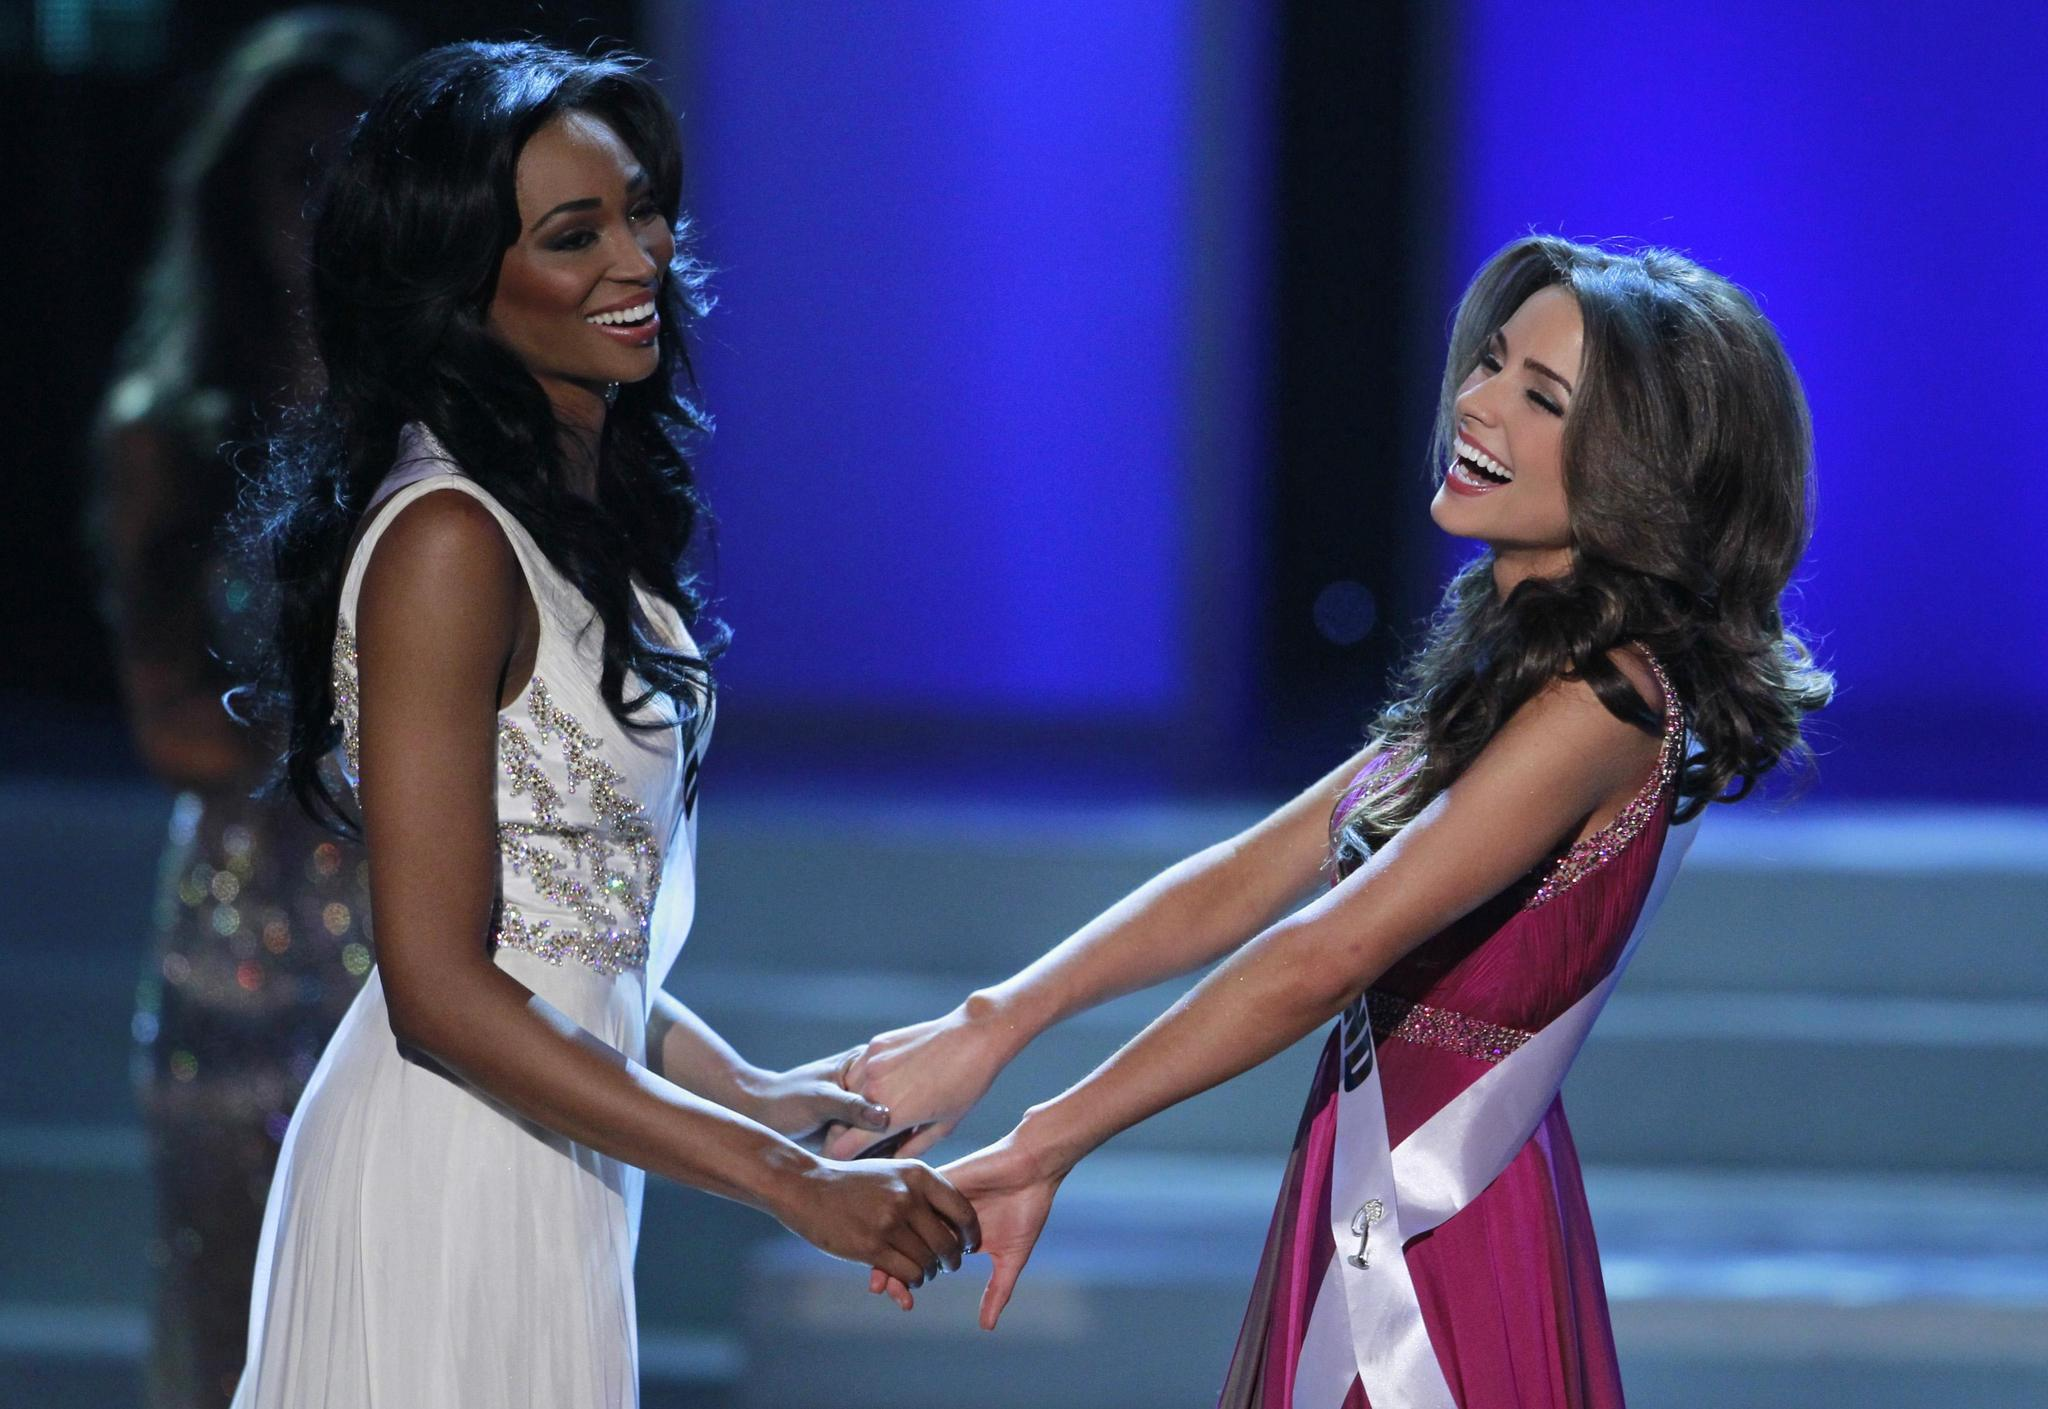 Miss Maryland USA Nana Meriwether, left, waits with Miss Rhode Island USA Olivia Culpo before Culpo was named Miss USA at the pageant in Las Vegas. Meriwether was the runner-up.